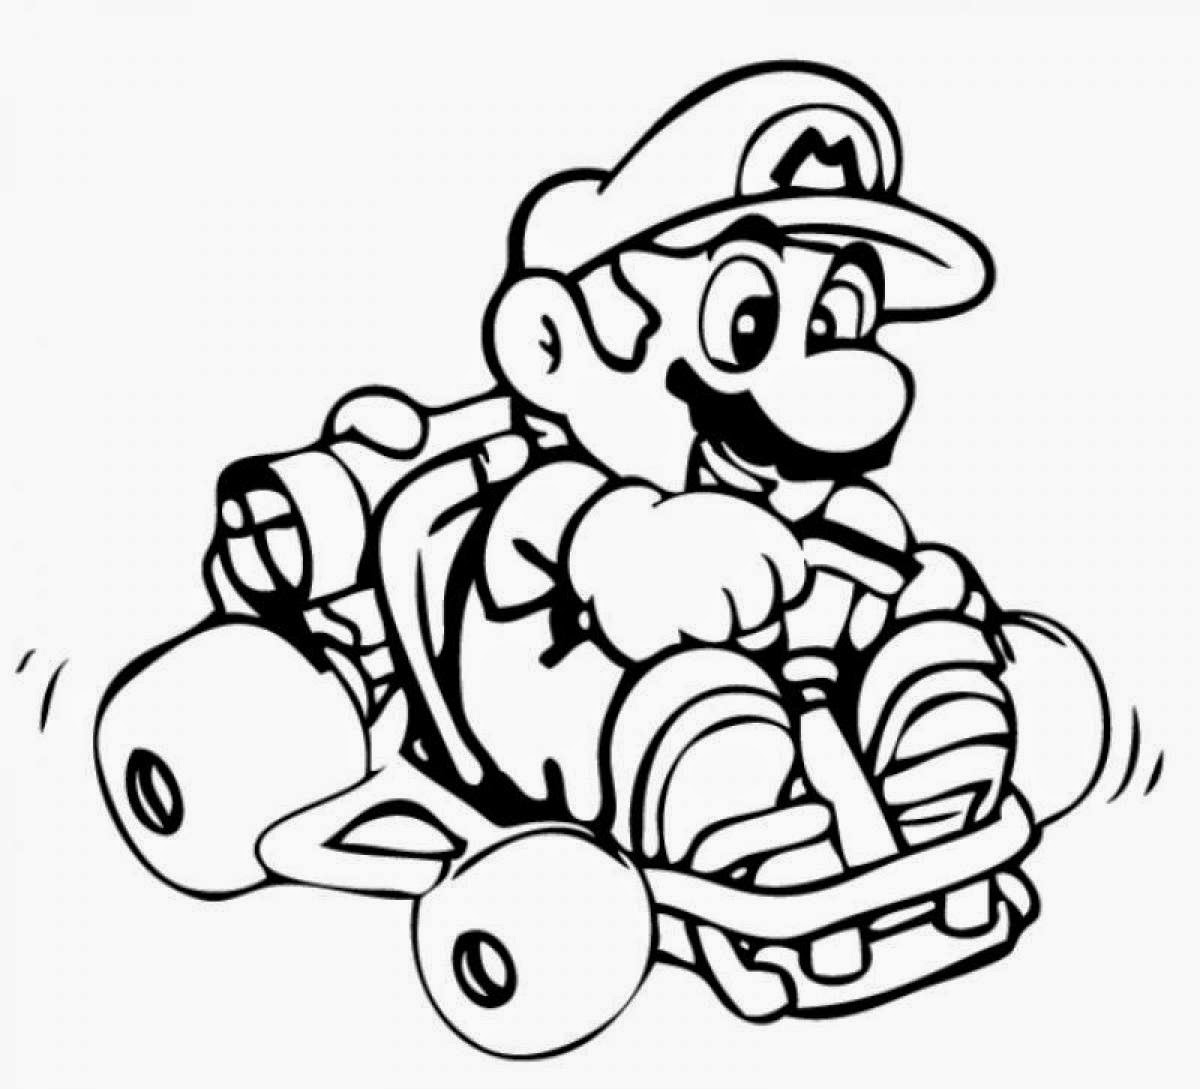 mario coloring pictures coloring pages mario coloring pages free and printable coloring mario pictures